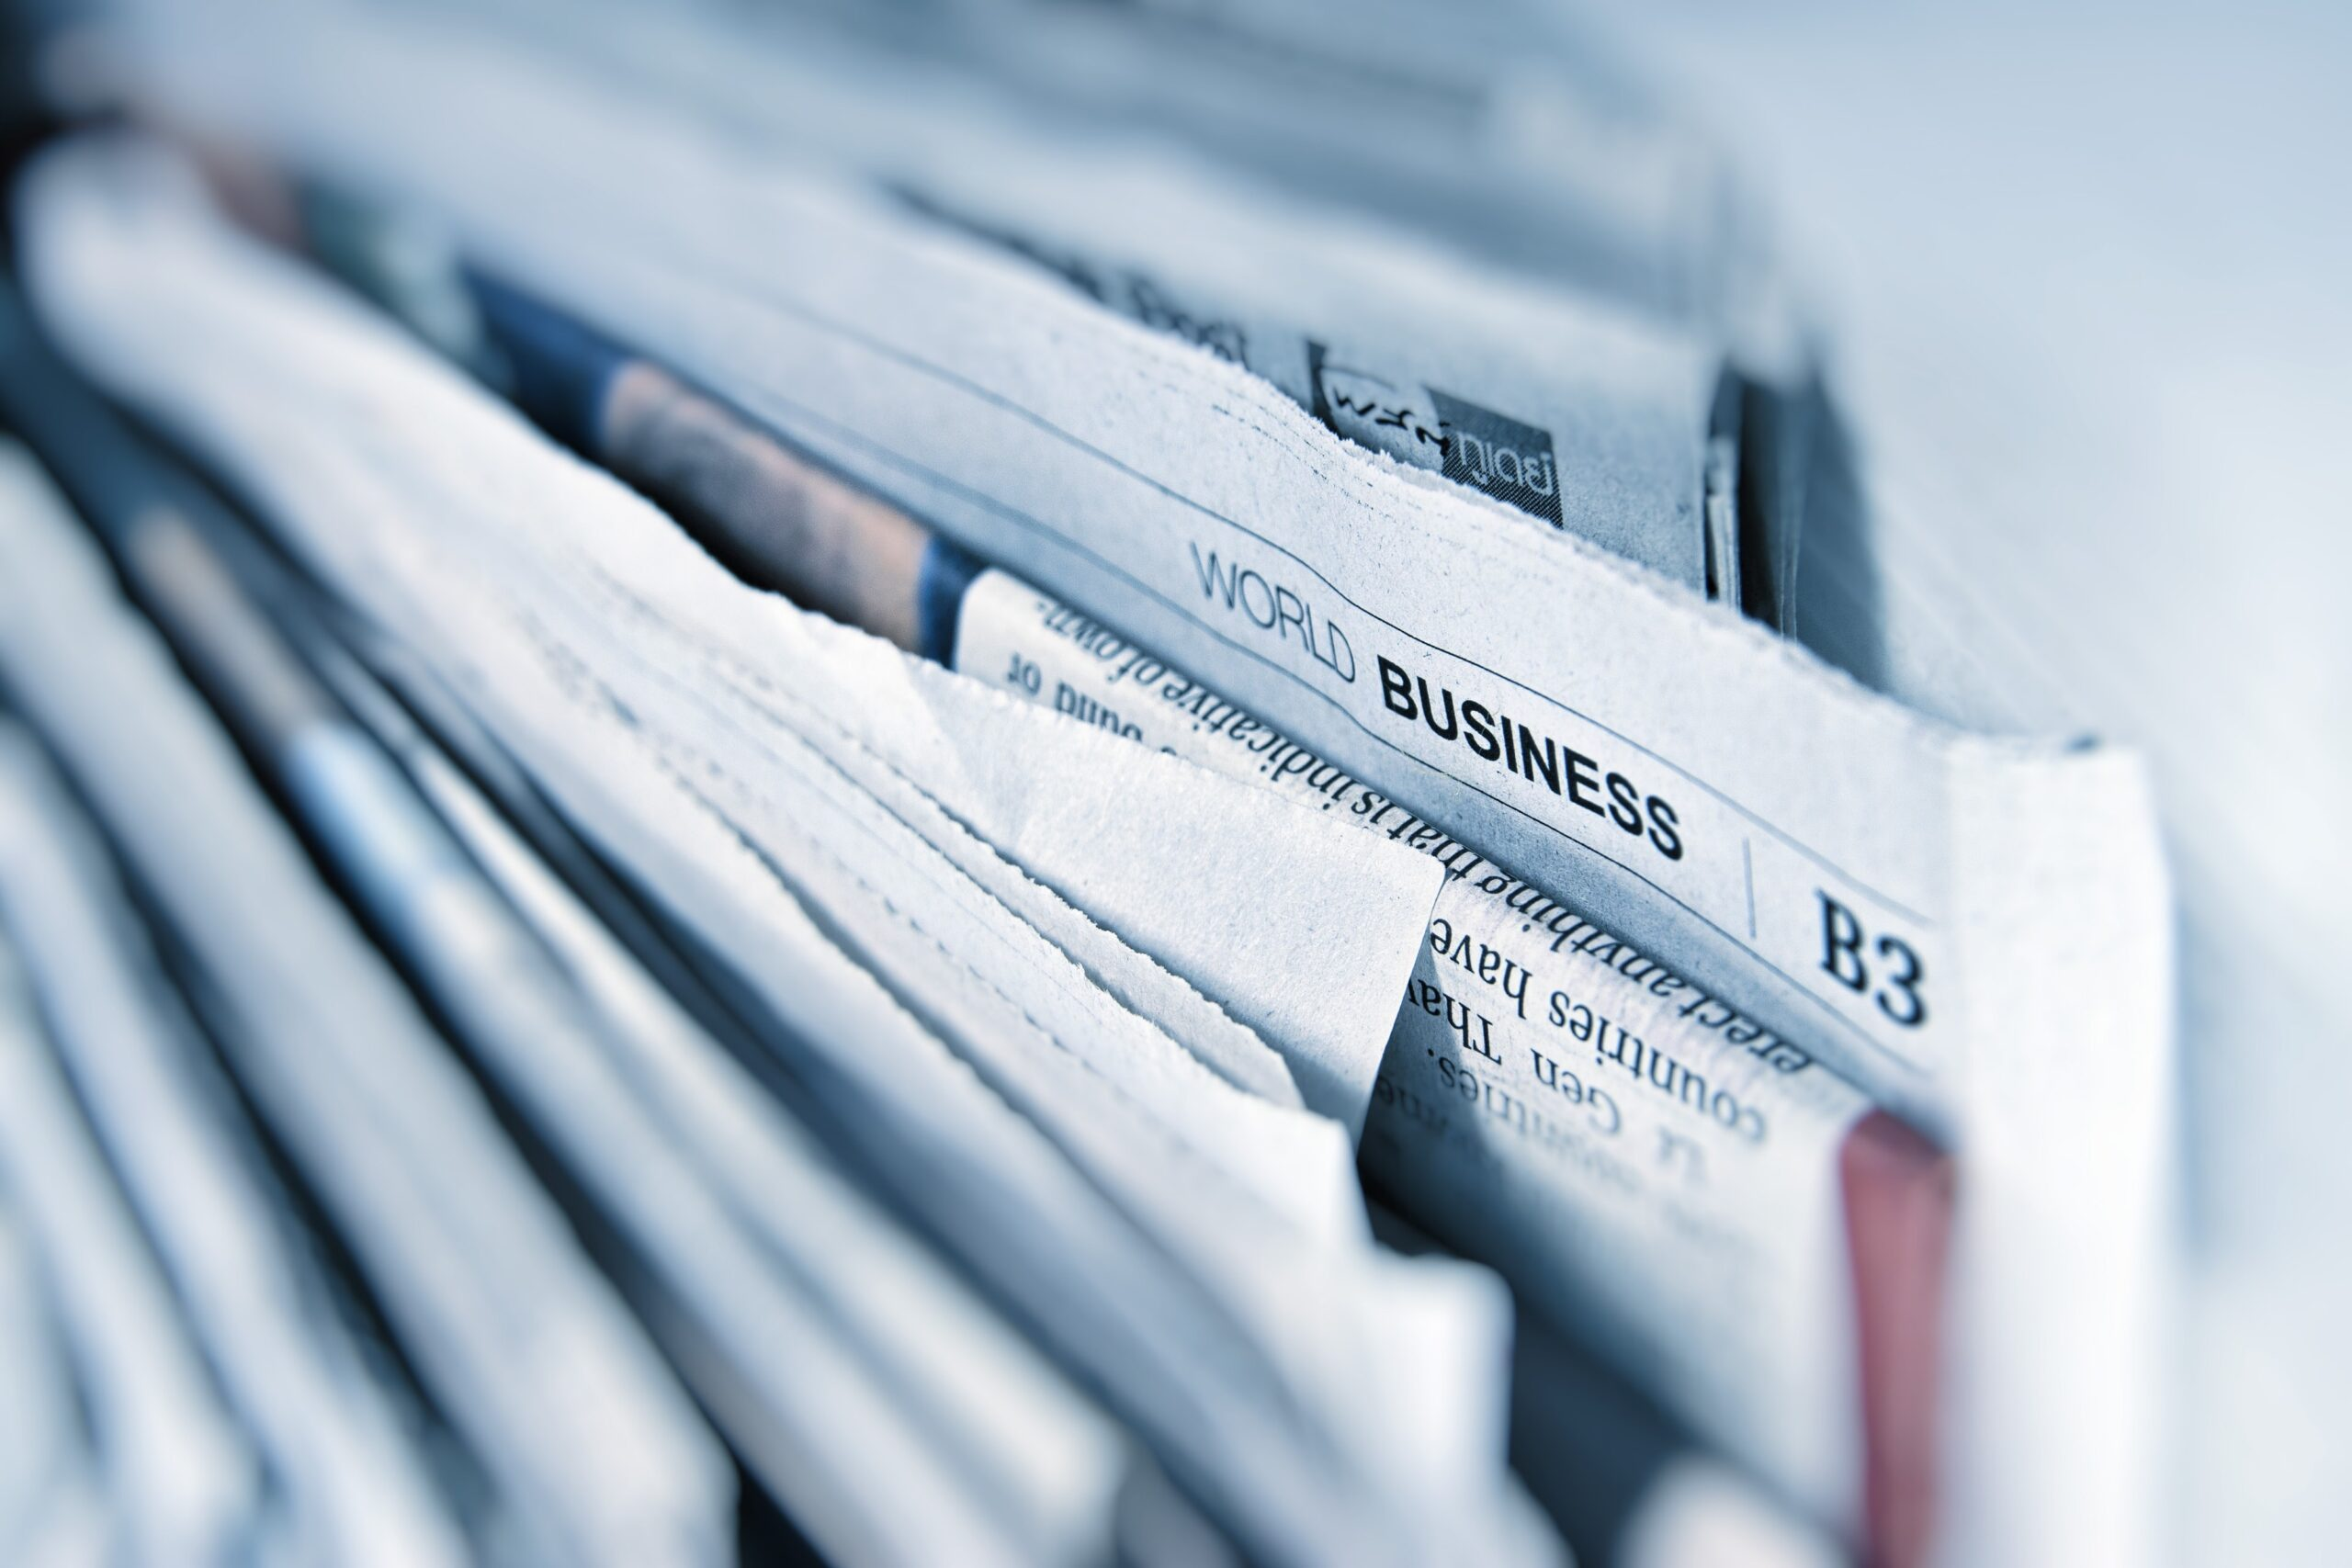 a photo of various newspapers